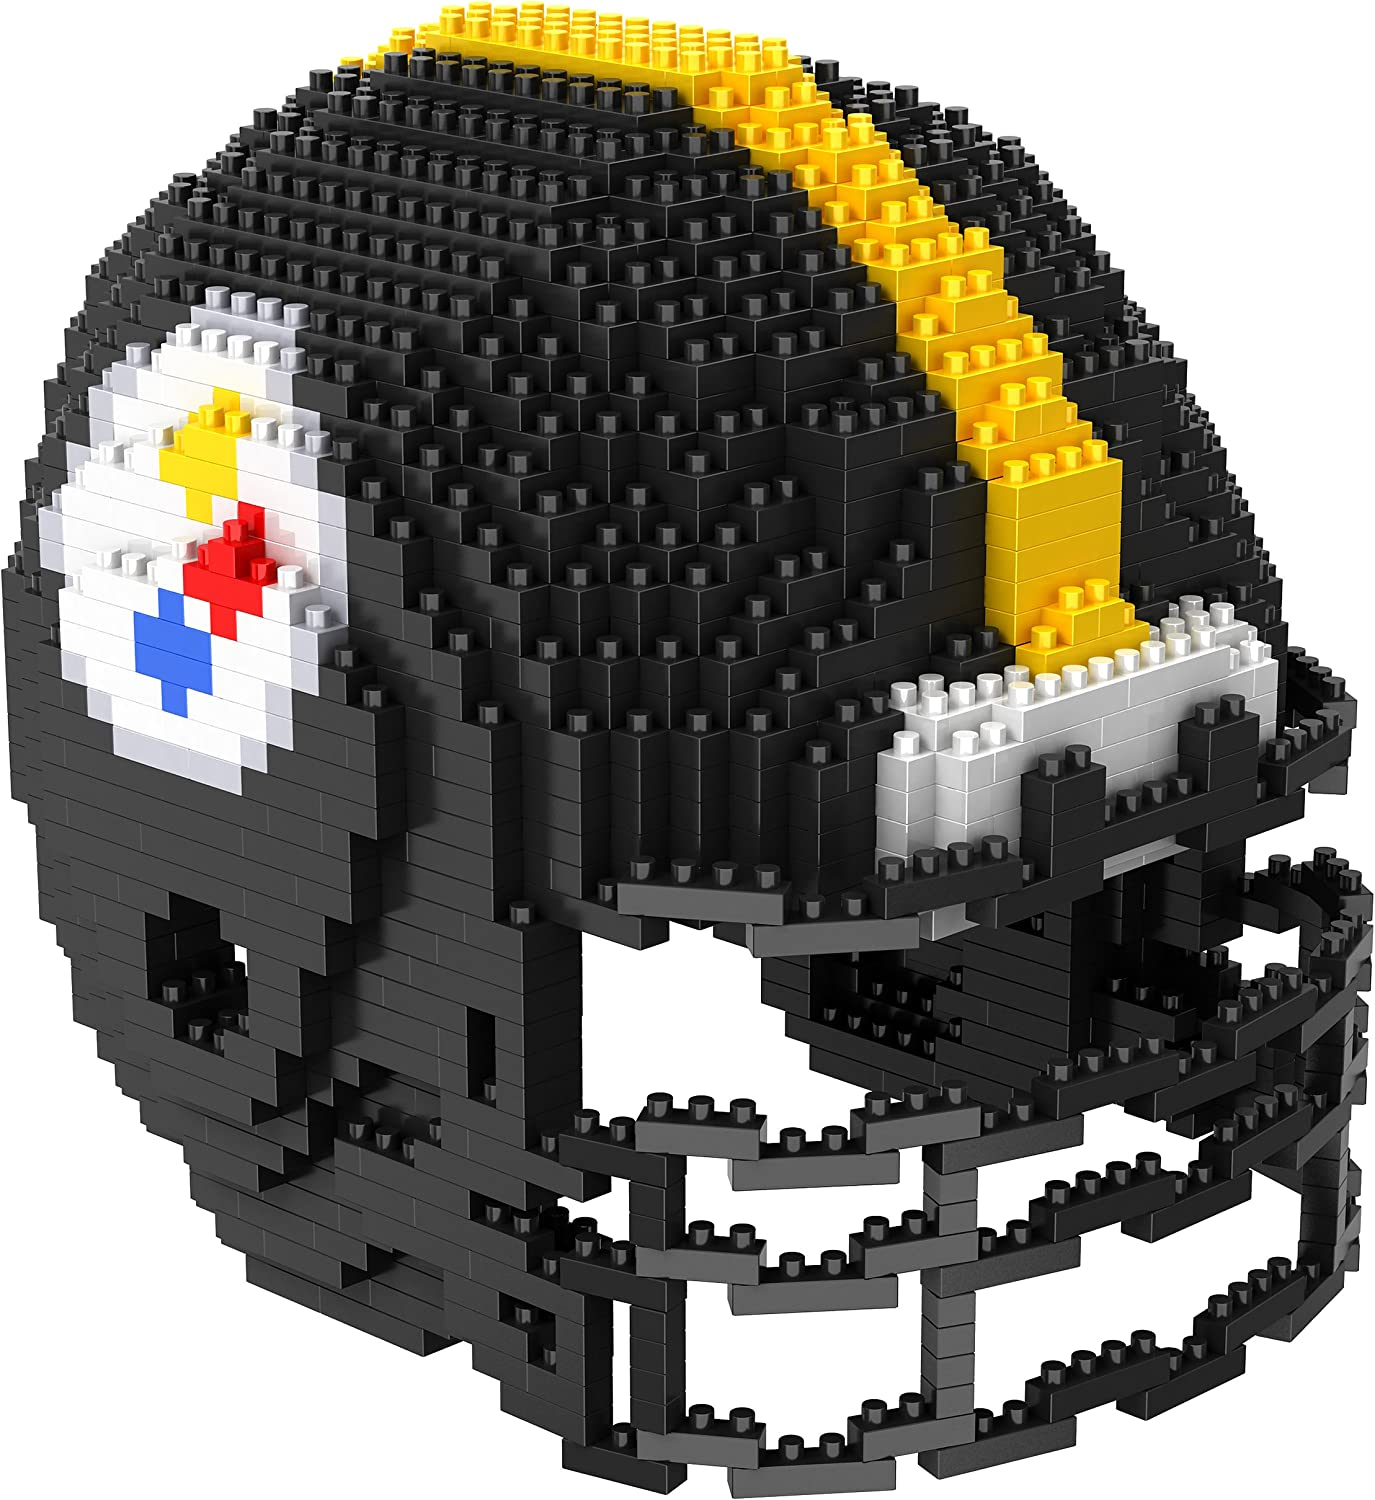 FOCO NFL 3D BRXLZ Construction Toy Blocks Set - Helmet